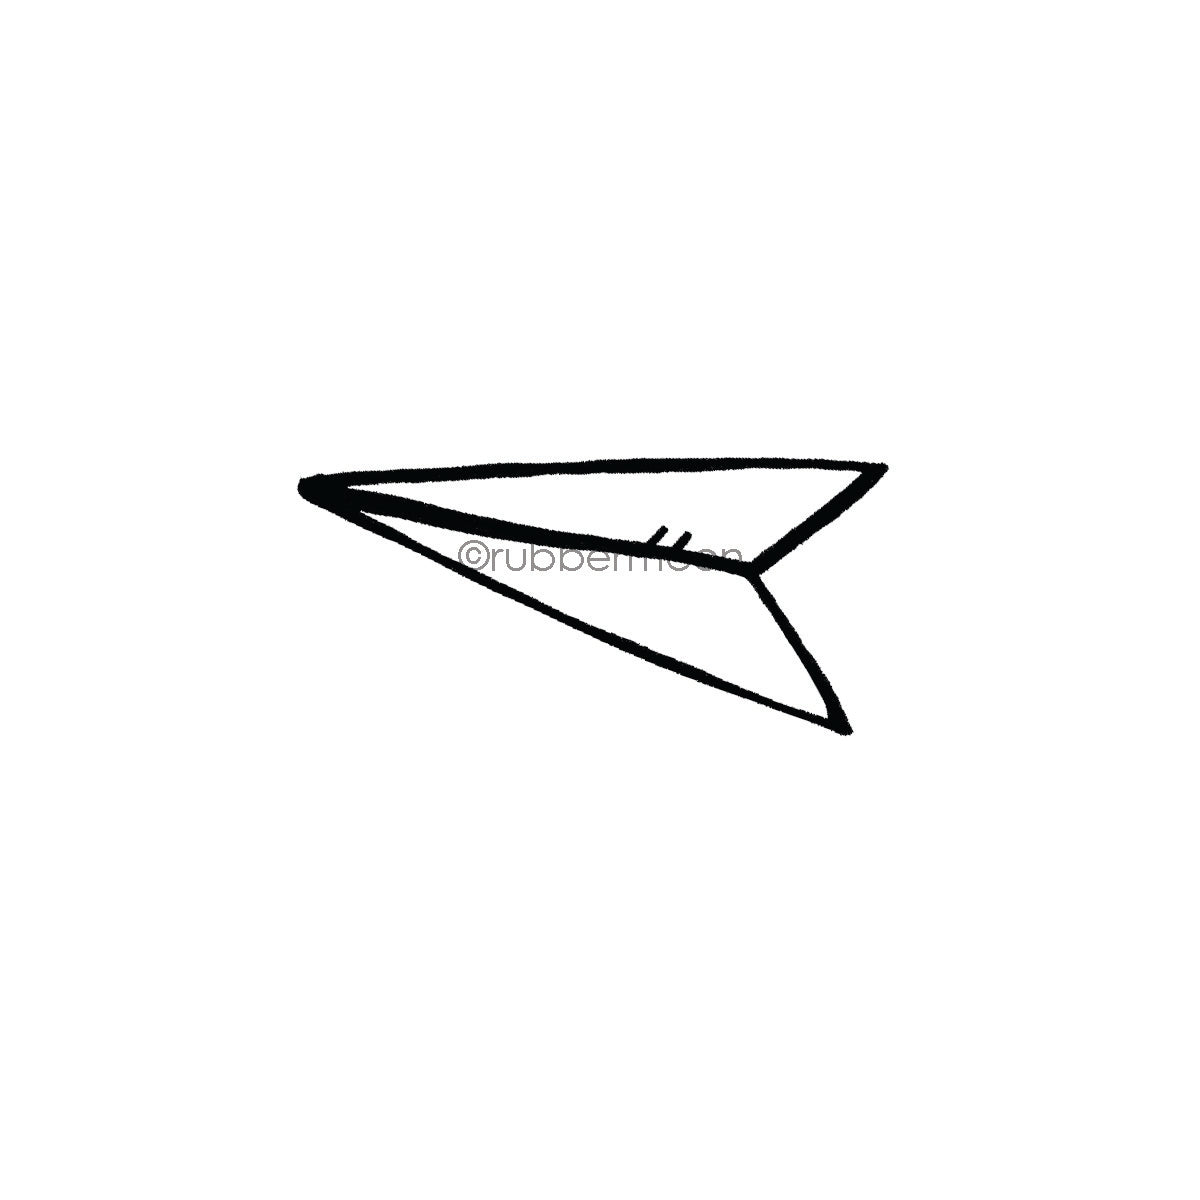 Kim Geiser | KG7432F - Paper Airplane - Rubber Art Stamp